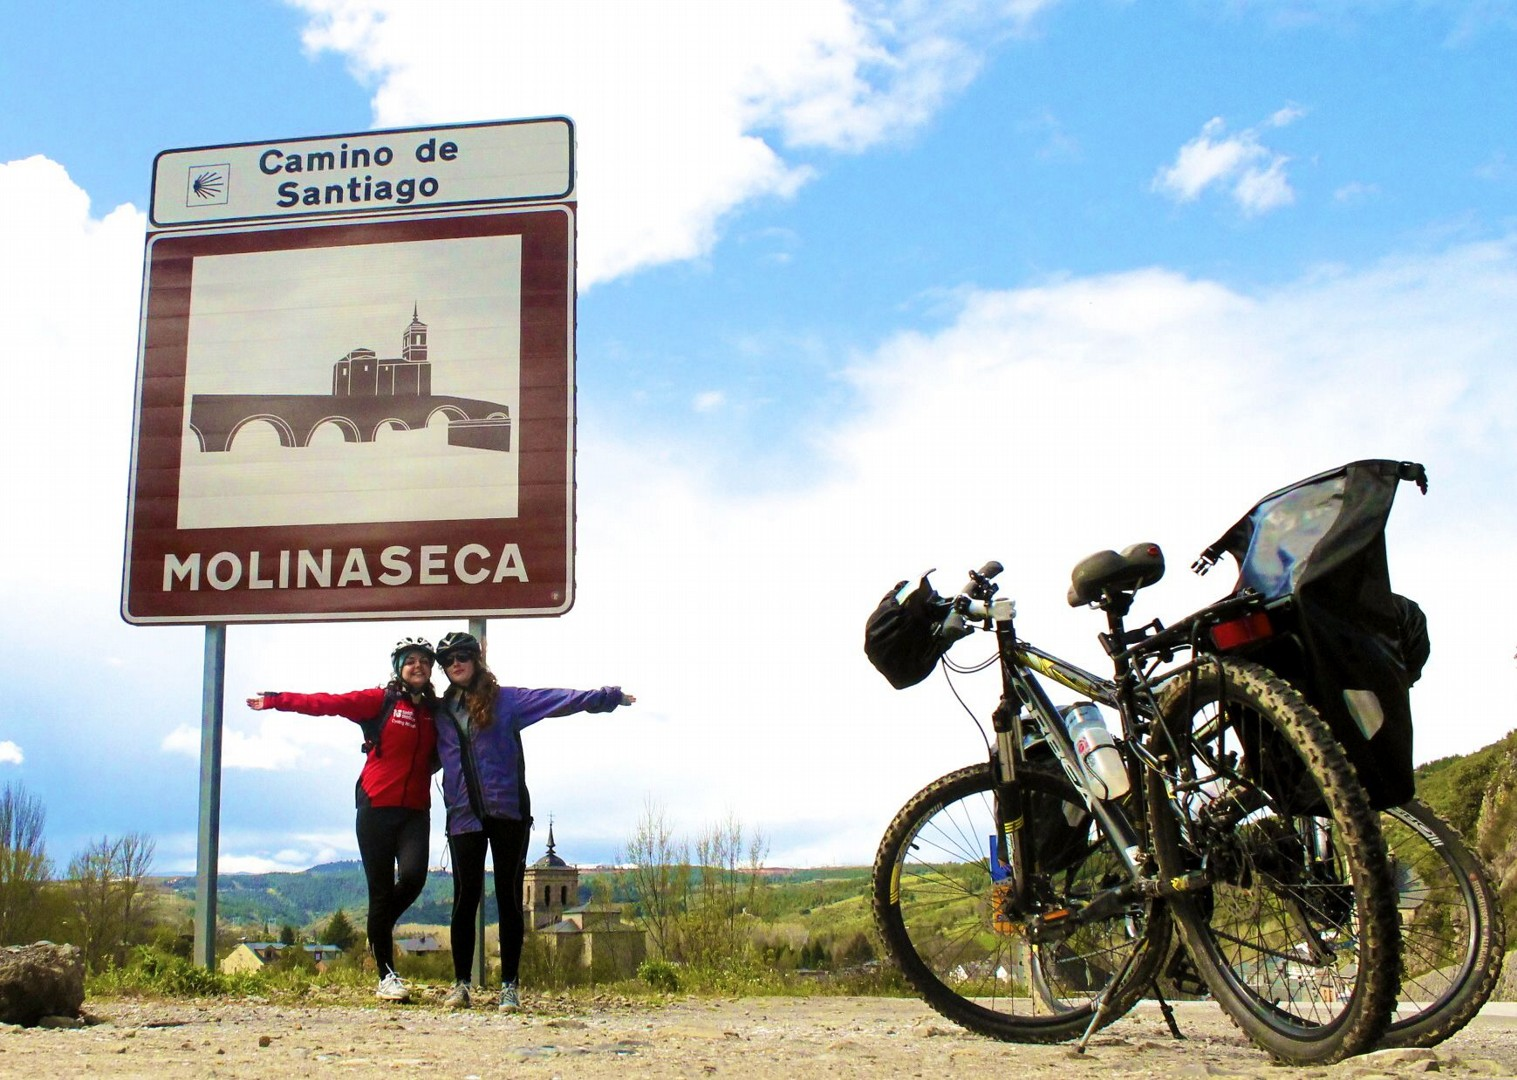 molinaseca-cycling-camino-de-santiago-northern-spain.jpg - Northern Spain - Camino de Santiago - Guided Leisure Cycling Holiday - Leisure Cycling